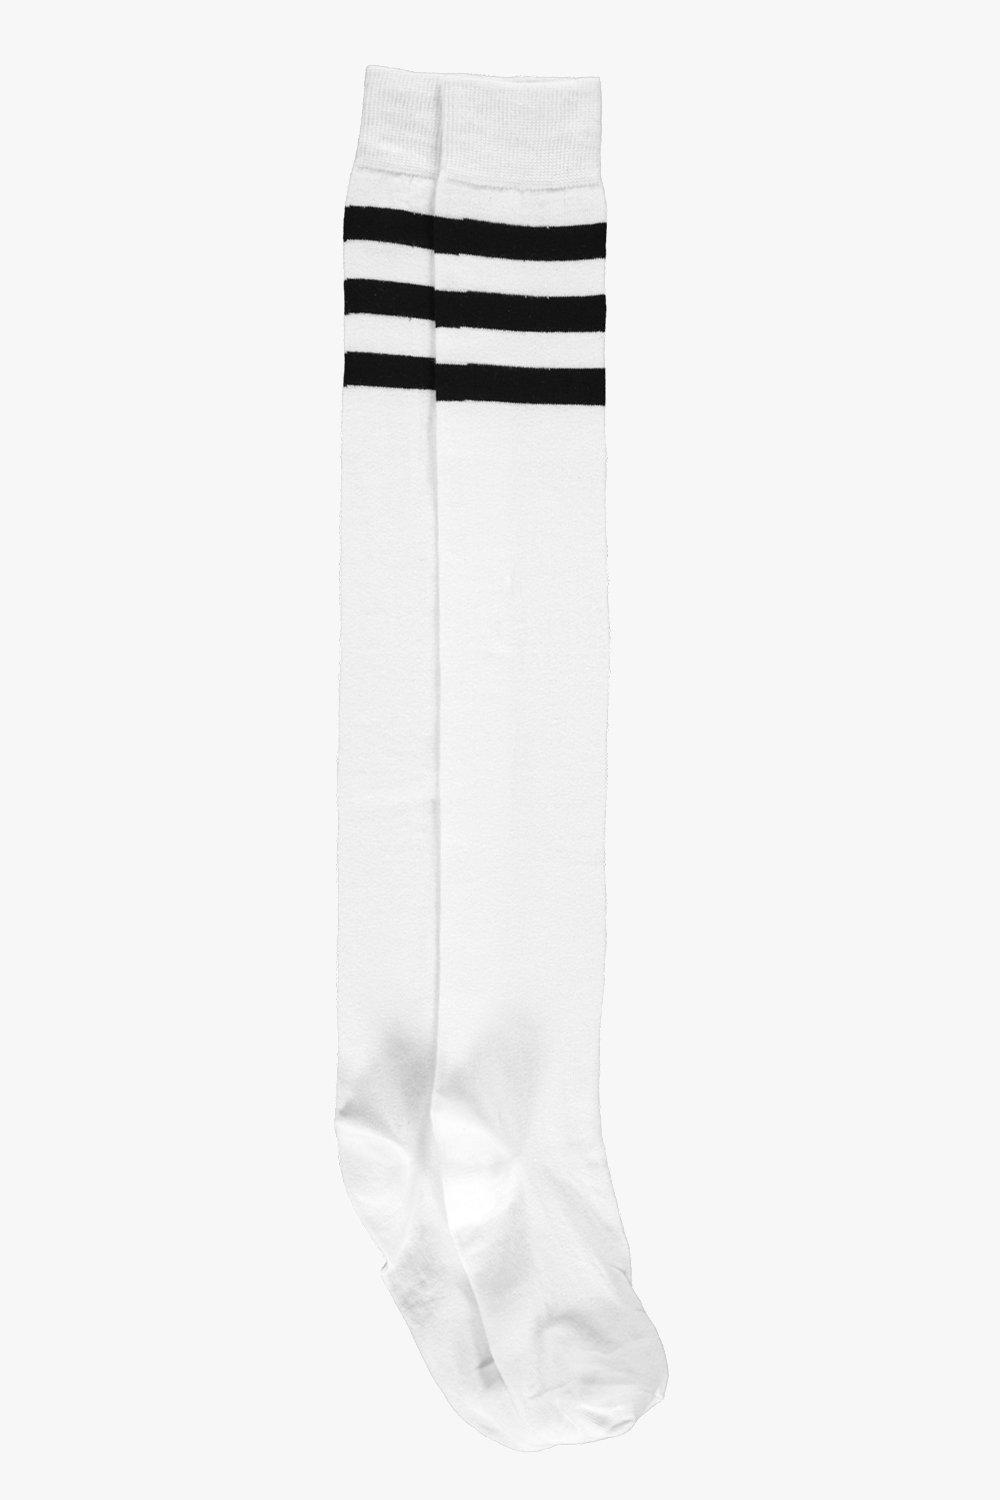 f1c886569 Womens White Stripe Top Knee High Socks. Hover to zoom